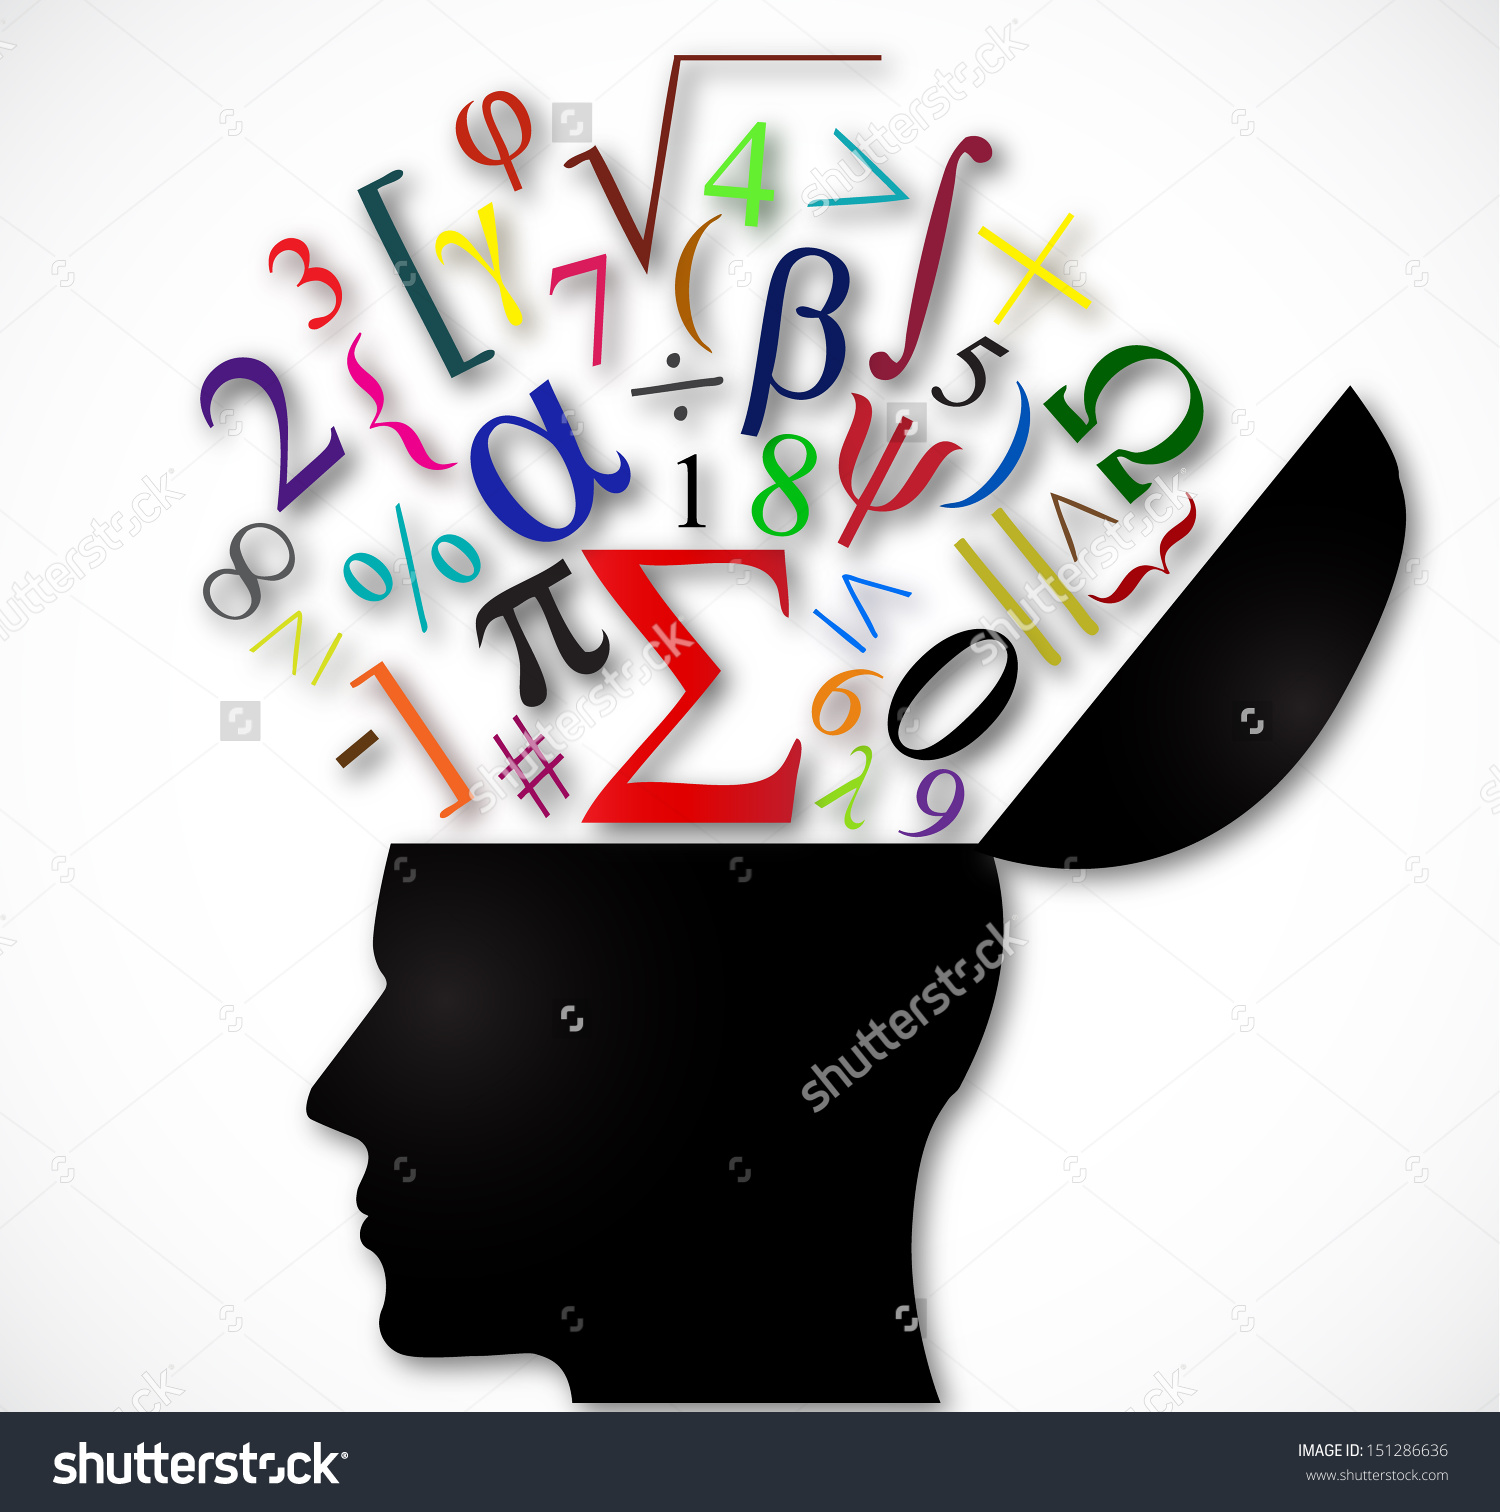 stock-photo-human-head-open-with-color-mathematical-symbols-i-illustration-151286636.jpg